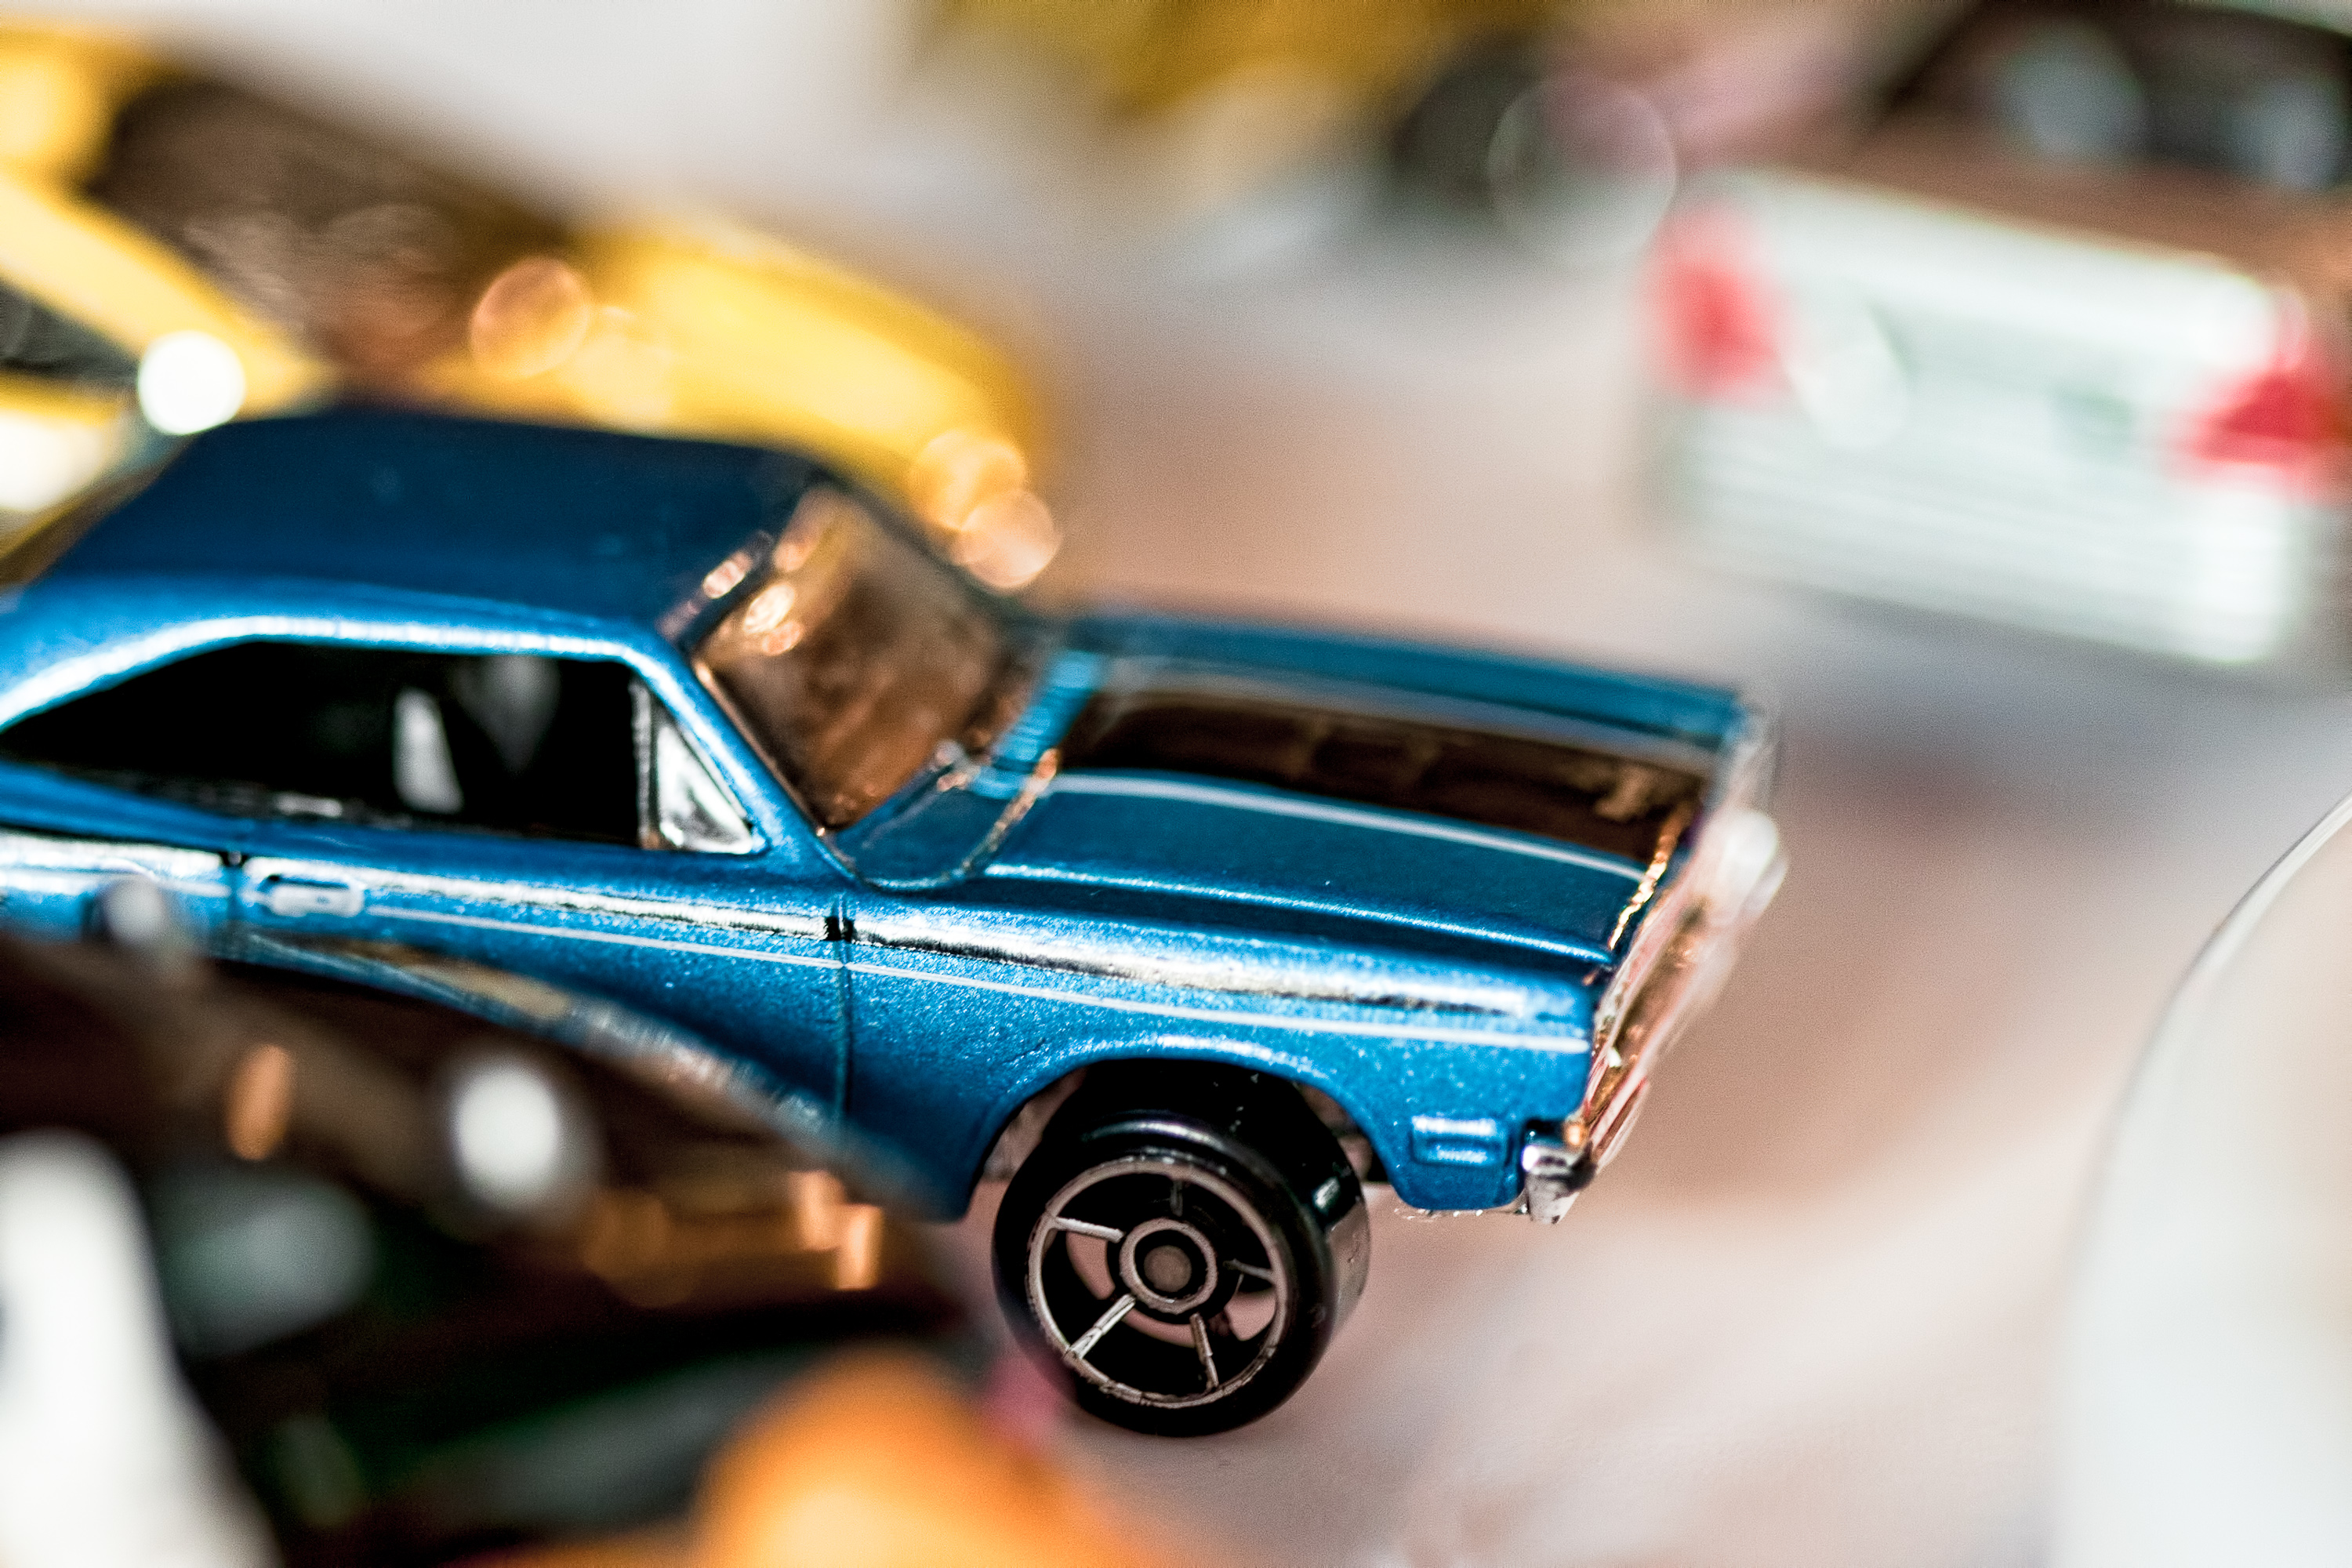 Toy Cars Christopher Martin Photography